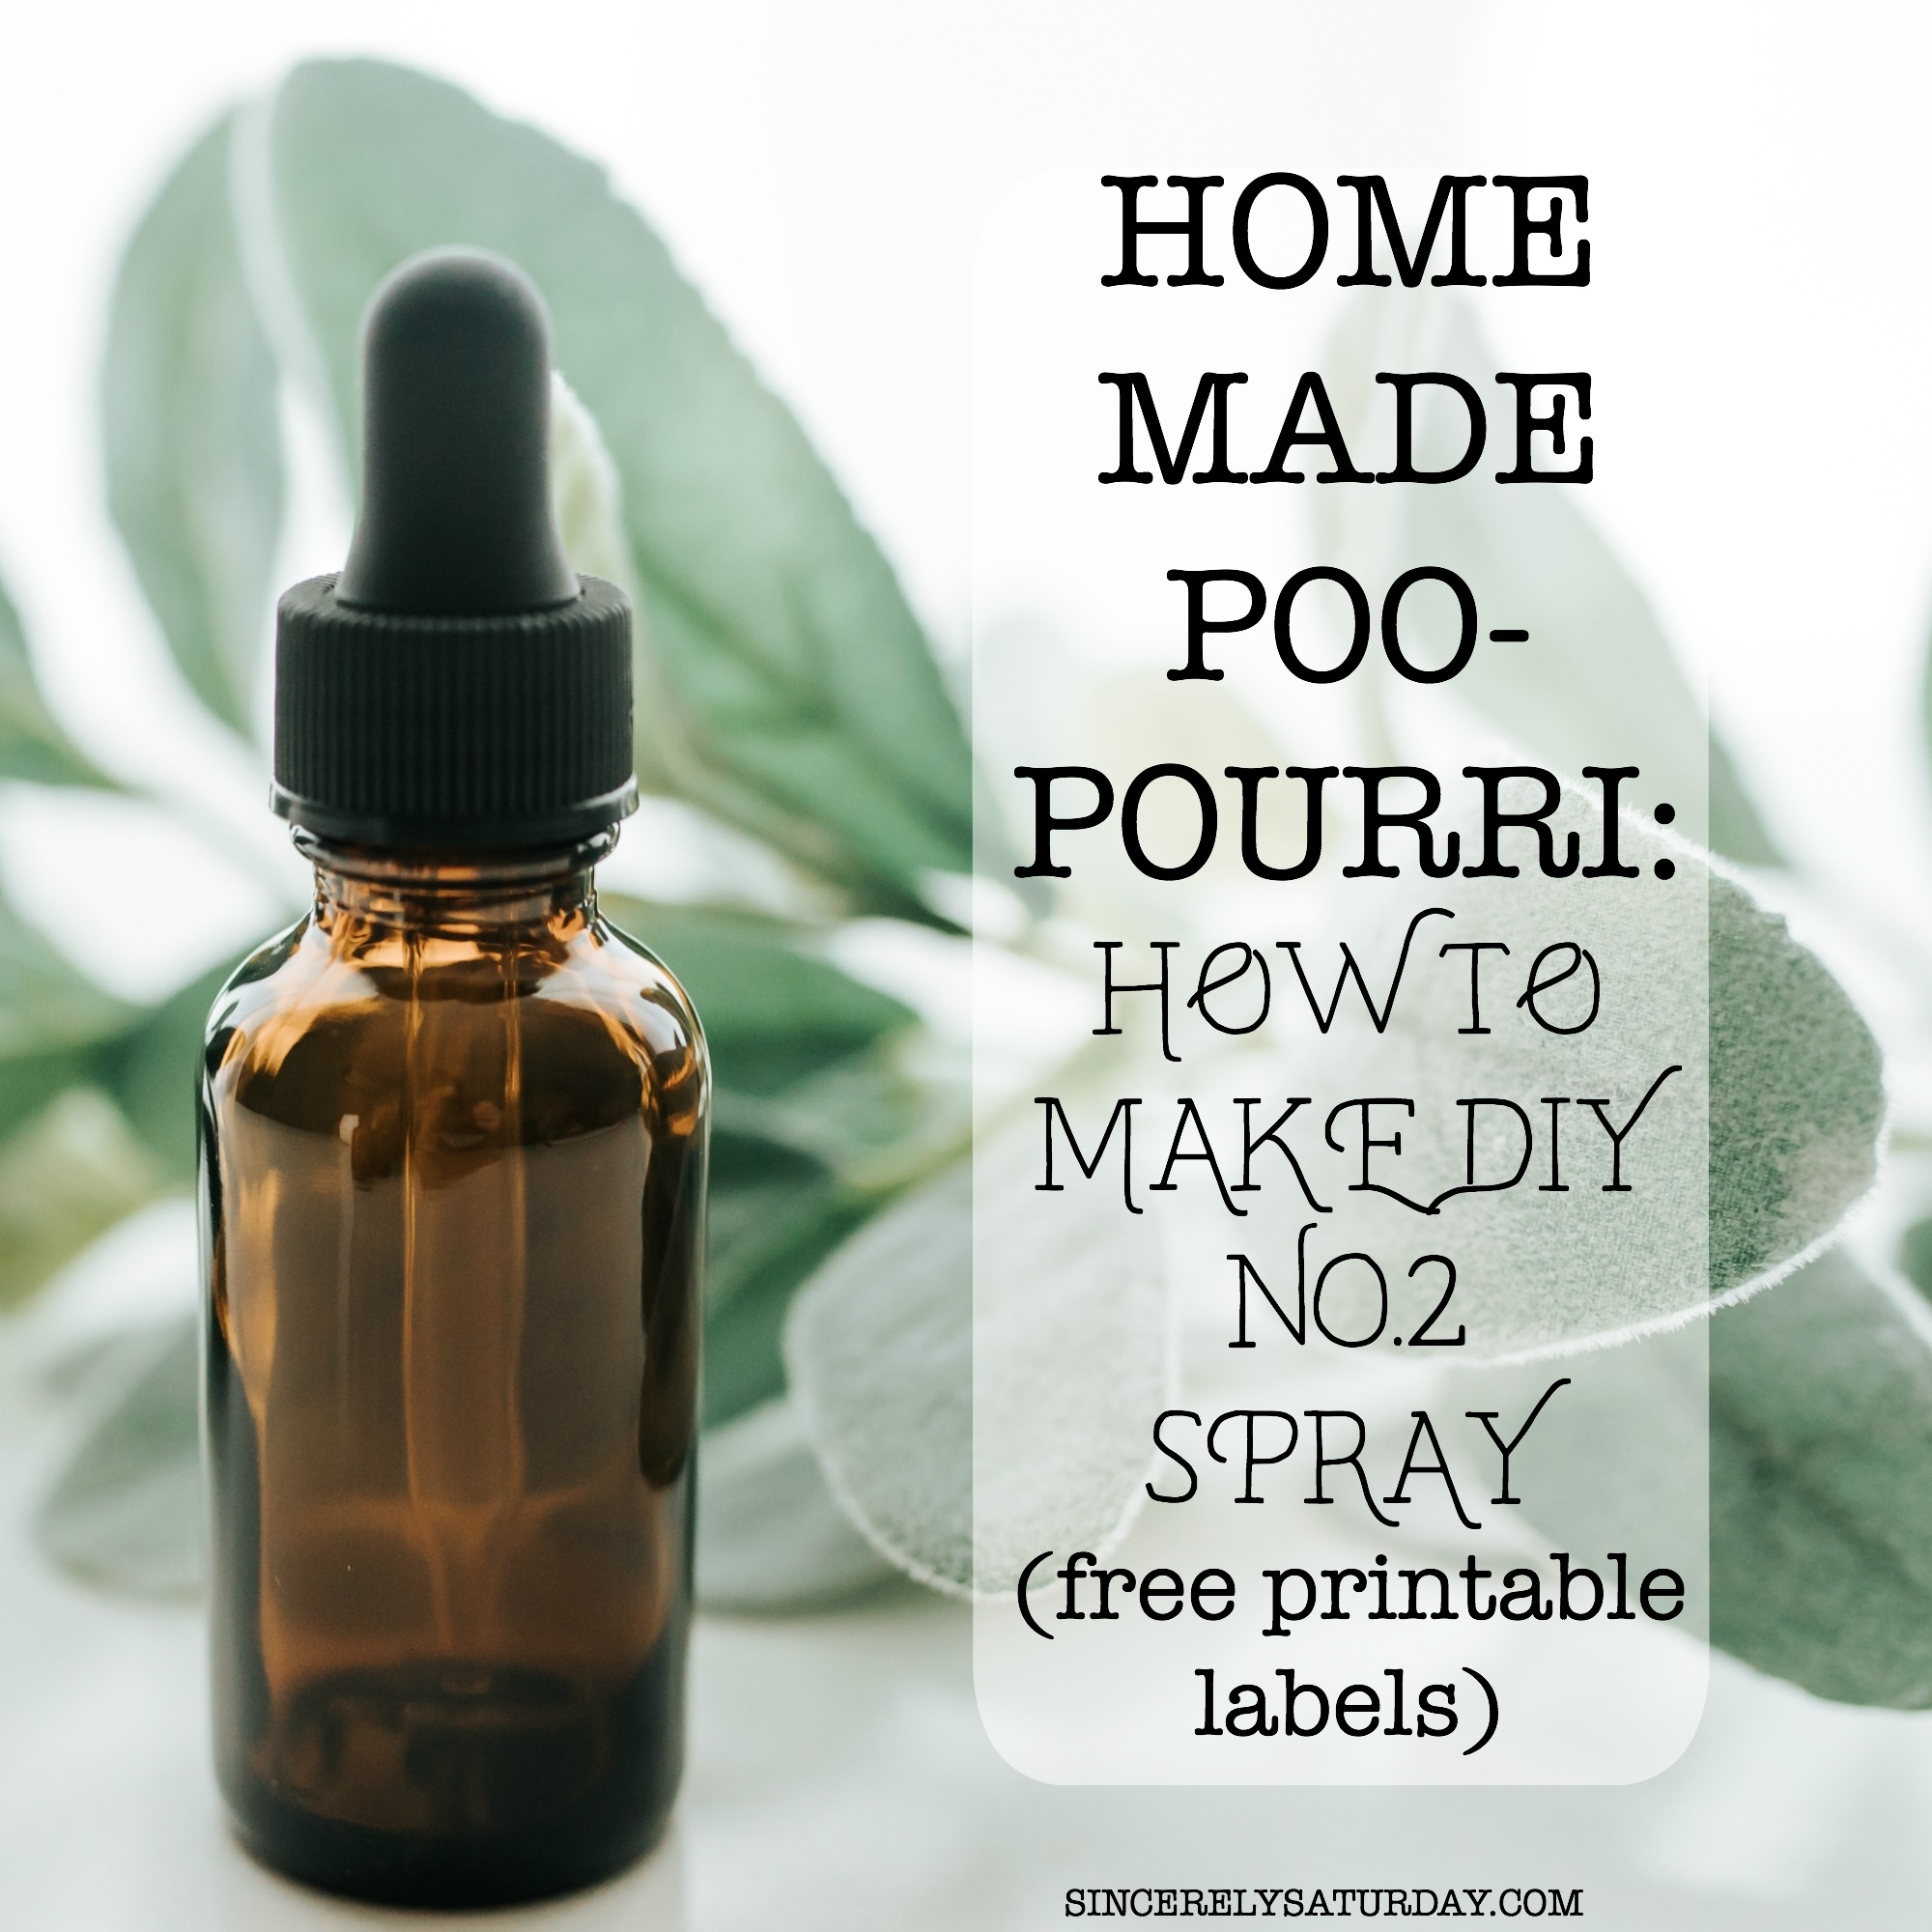 homemade poo-pourri: how to make diy no.2 spray (printable labels